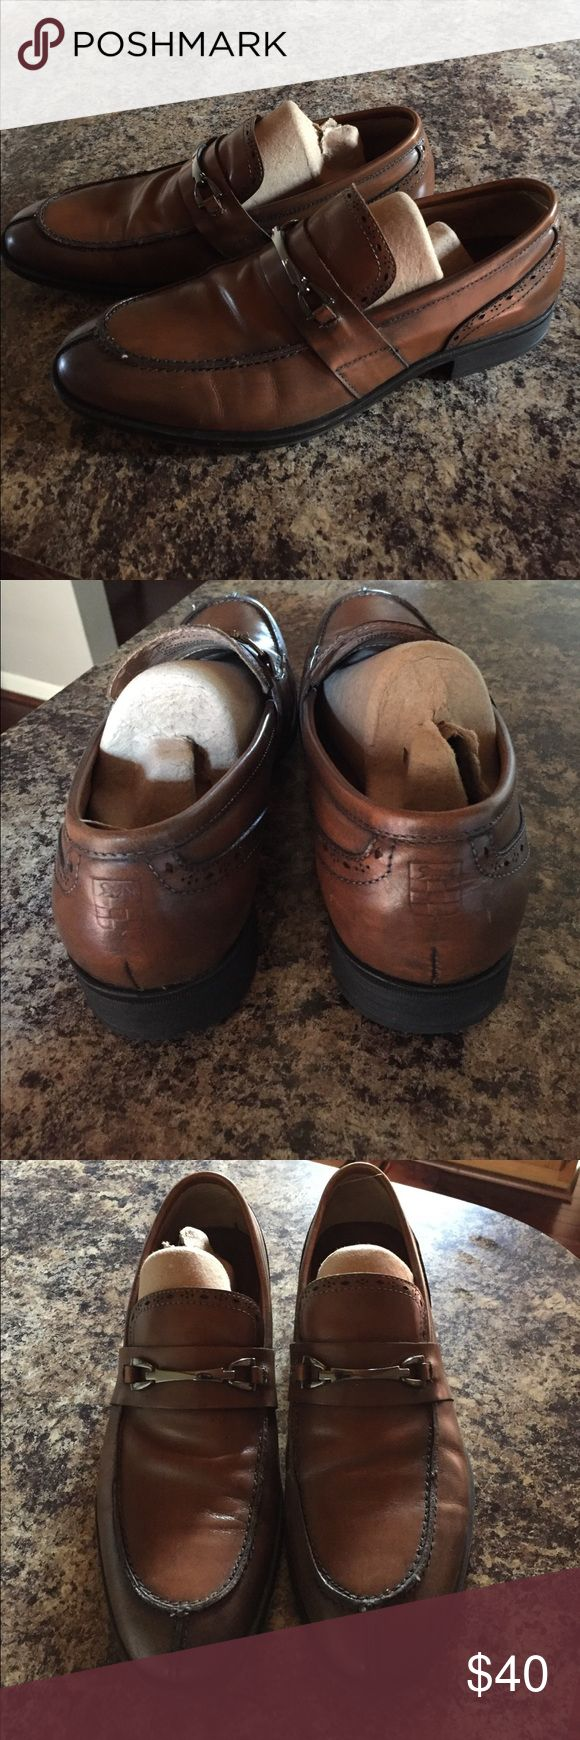 Men's Vince Camuto Brown Leather Bit Loafers Selling one pair of Men's Vince Camuto brown leather loafers. Size 9D, but run a bit small as I wear a 10 in my other loafers. Worn twice and in near new shape! Retail was 225$ Vince Camuto Shoes Loafers & Slip-Ons